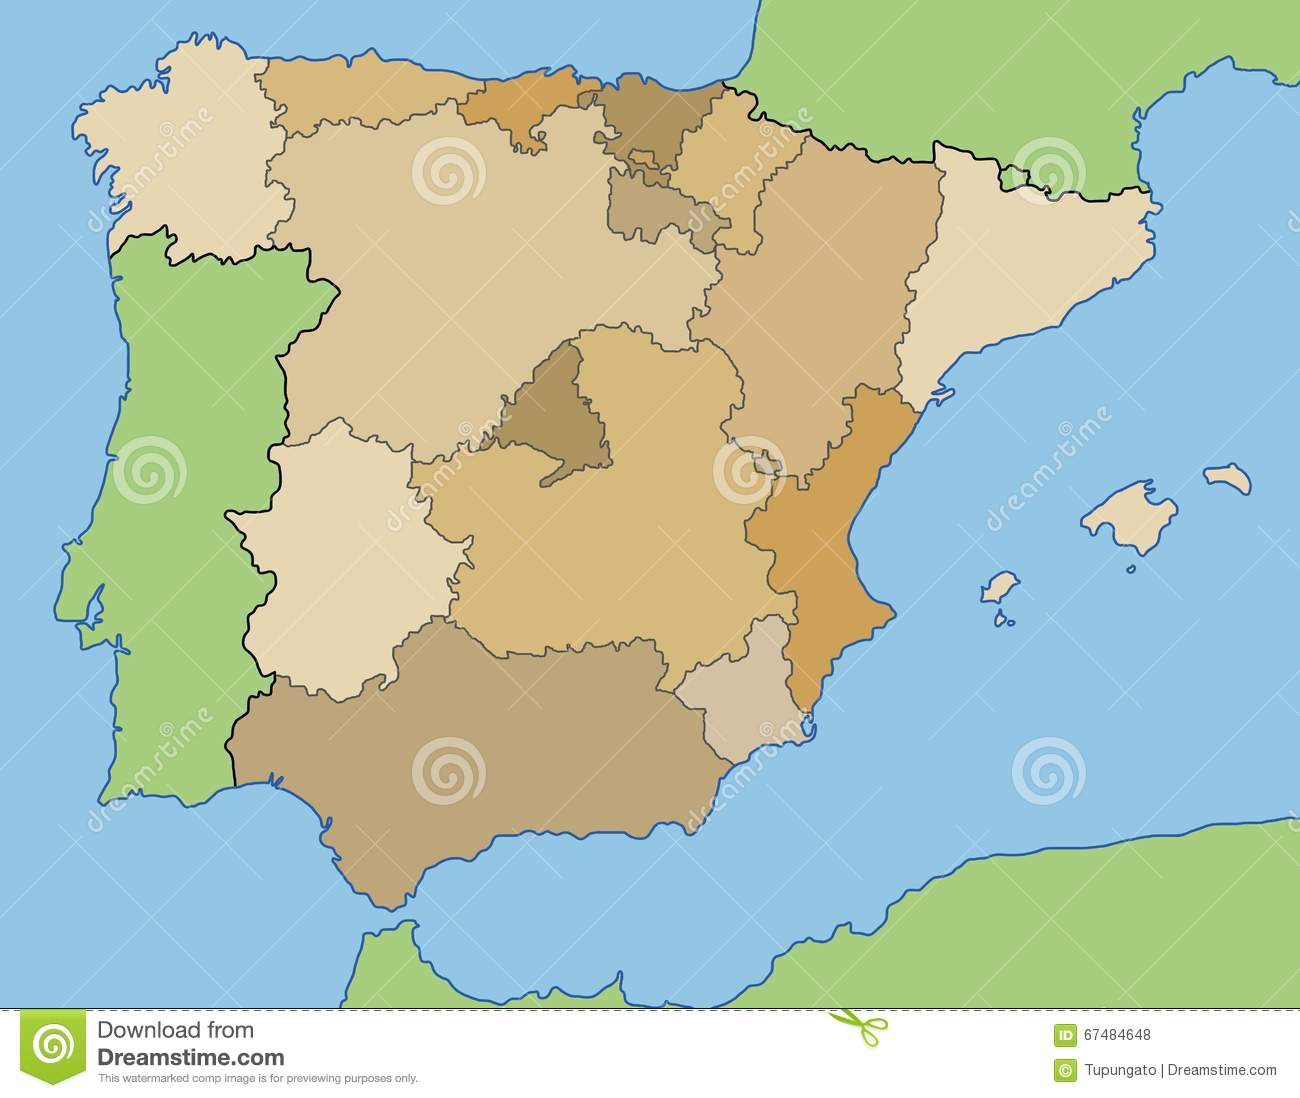 Country Of Spain Map.Spain Map Stock Vector Illustration Of Drawing Province 67484648